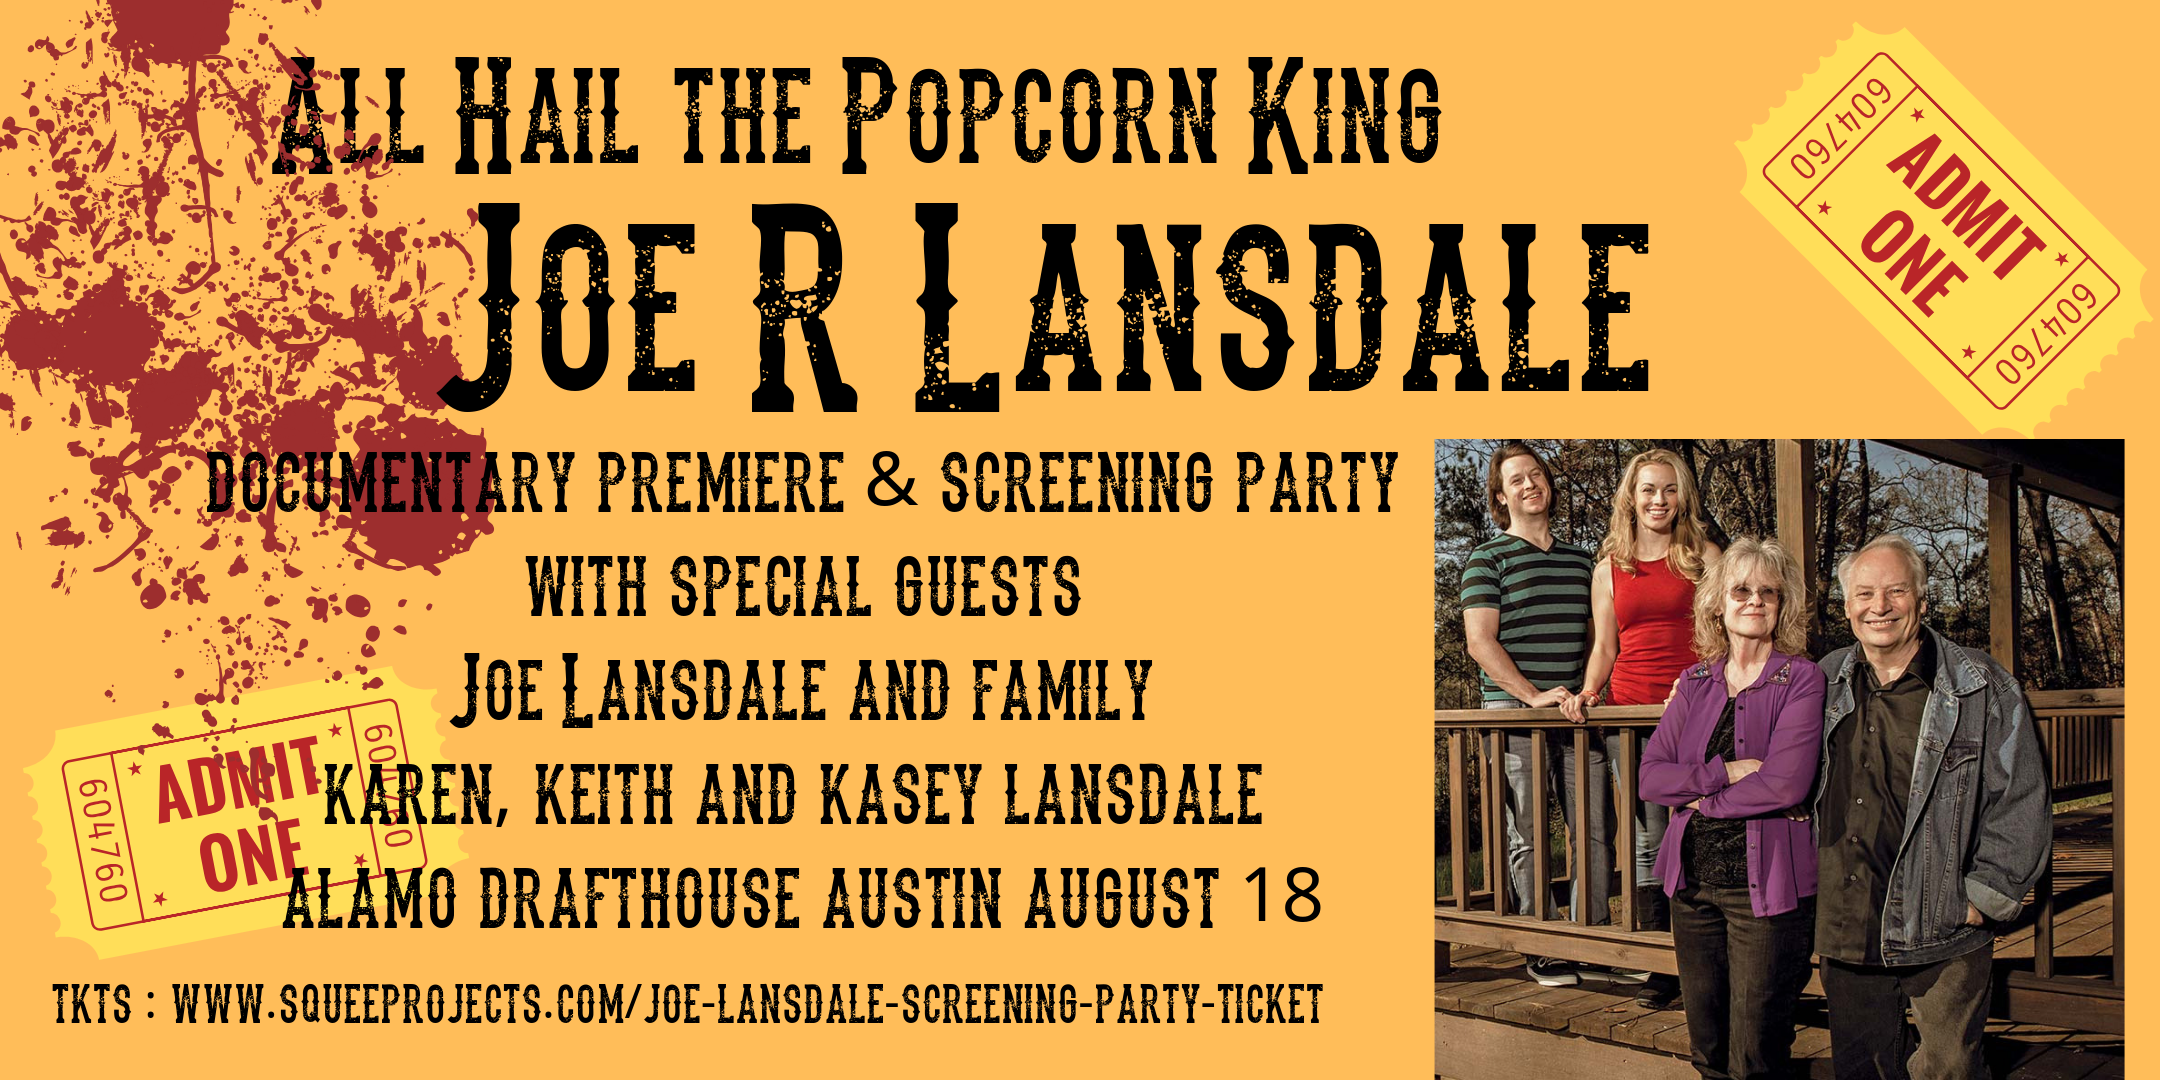 0de4dec8ad17ba970c8cd52d795d5930-premiere-screening-party-of-all-hail-the-popcorn-king--joe-r-lansdale-documentary